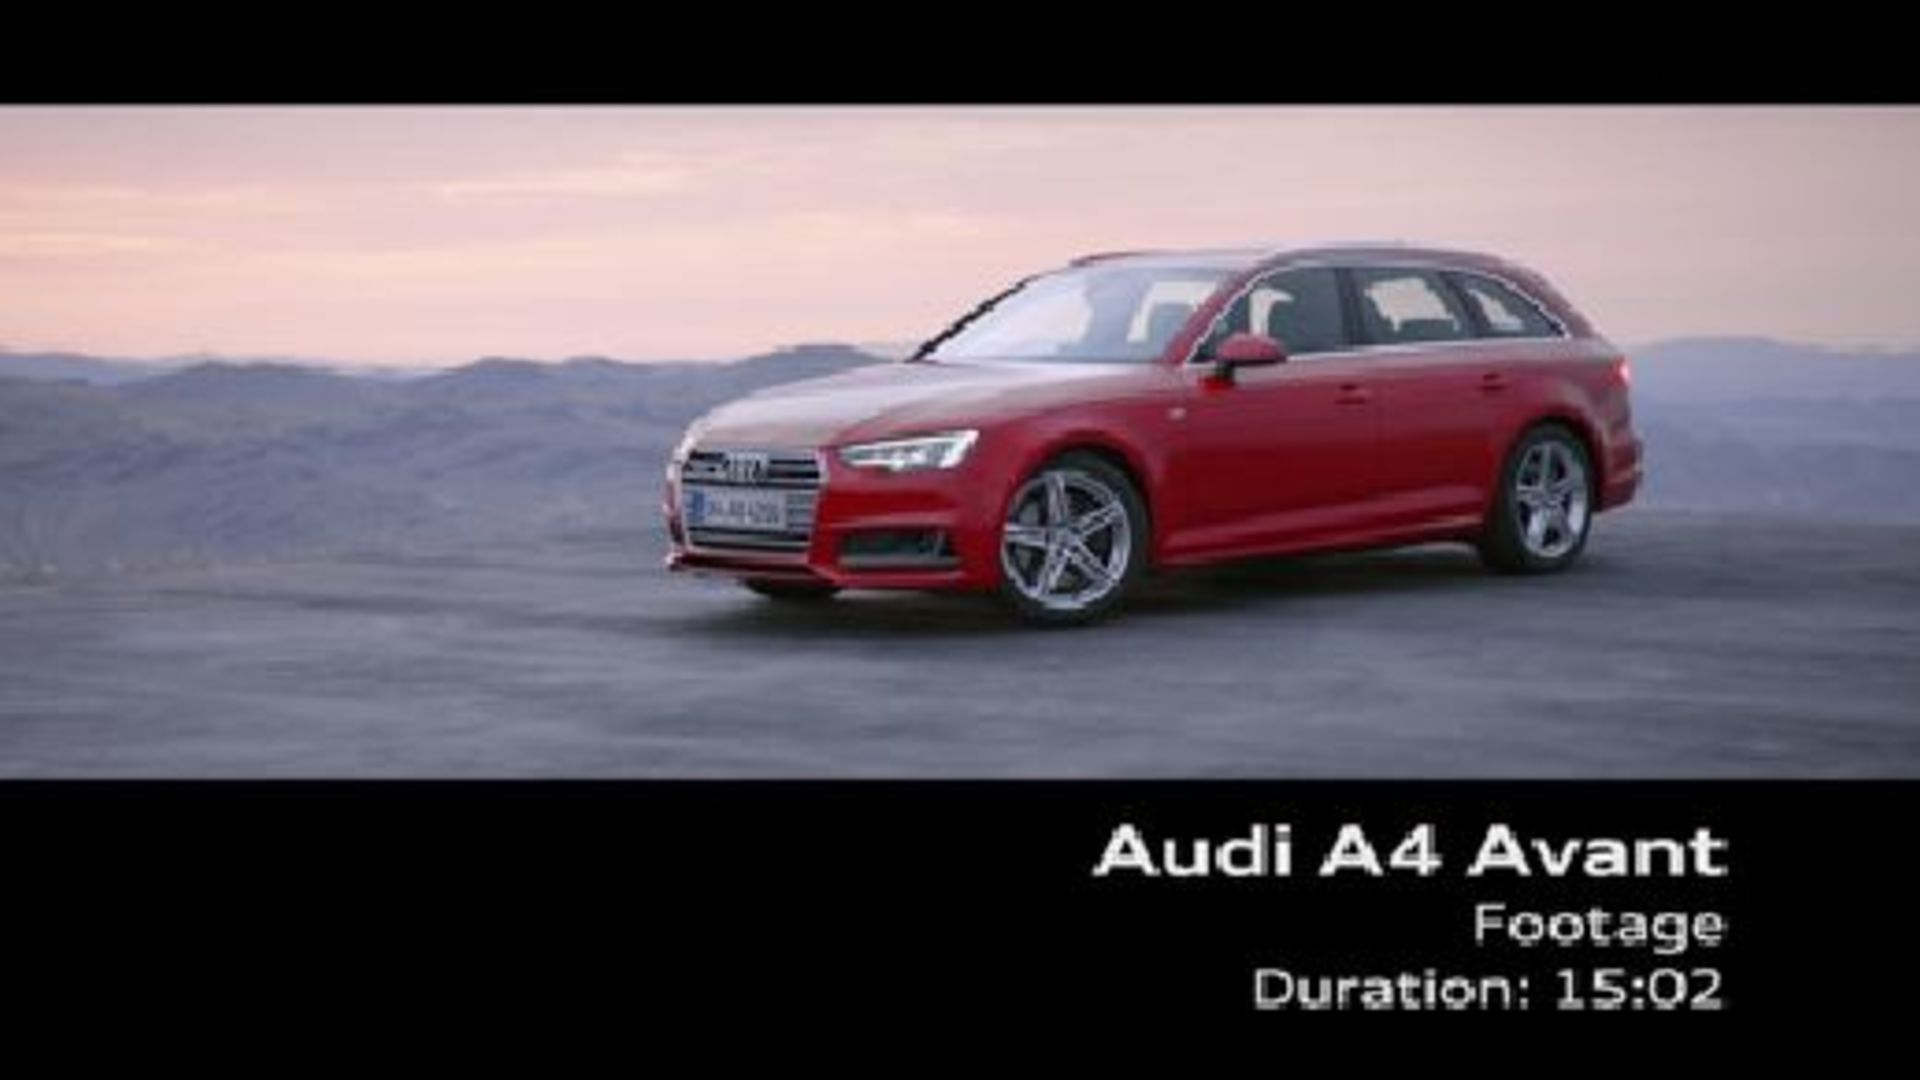 The new Audi A4 Avant (2015) - Footage